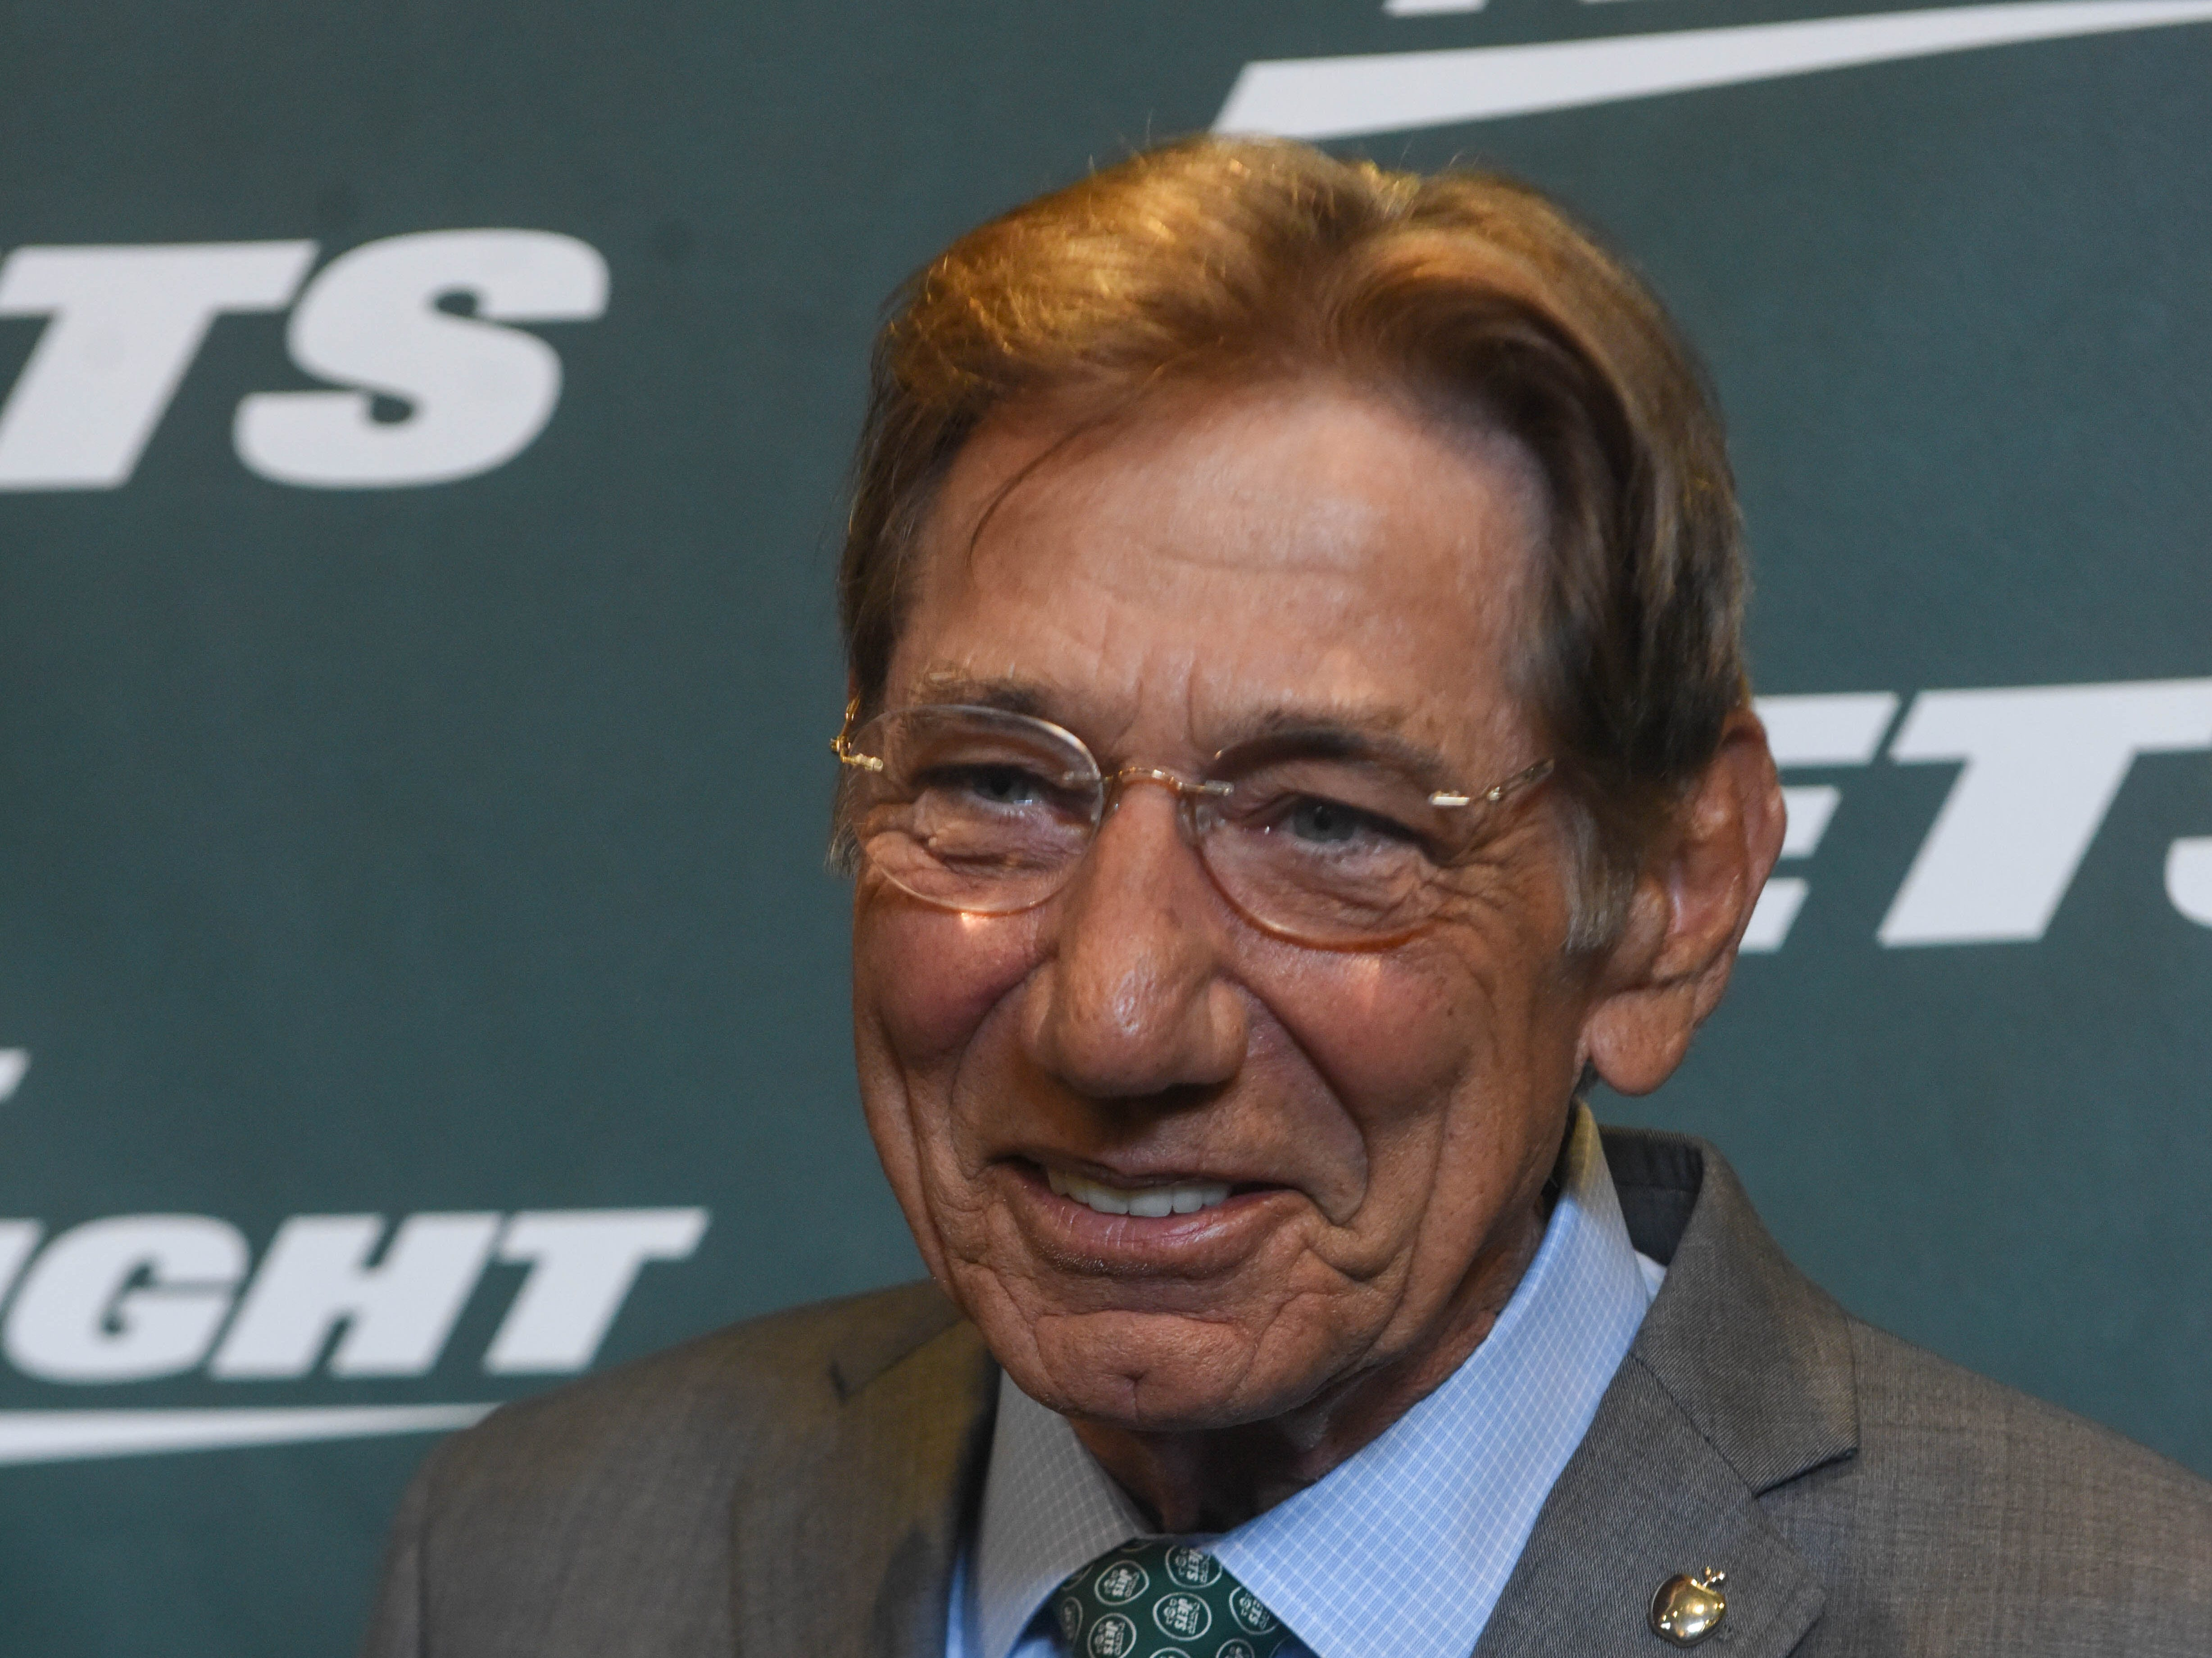 Joe Namath (NY Jets). The NY Jets unveiled their new football uniforms with an event hosted by JB Smoove at Gotham Hall in New York. 04/05/2019